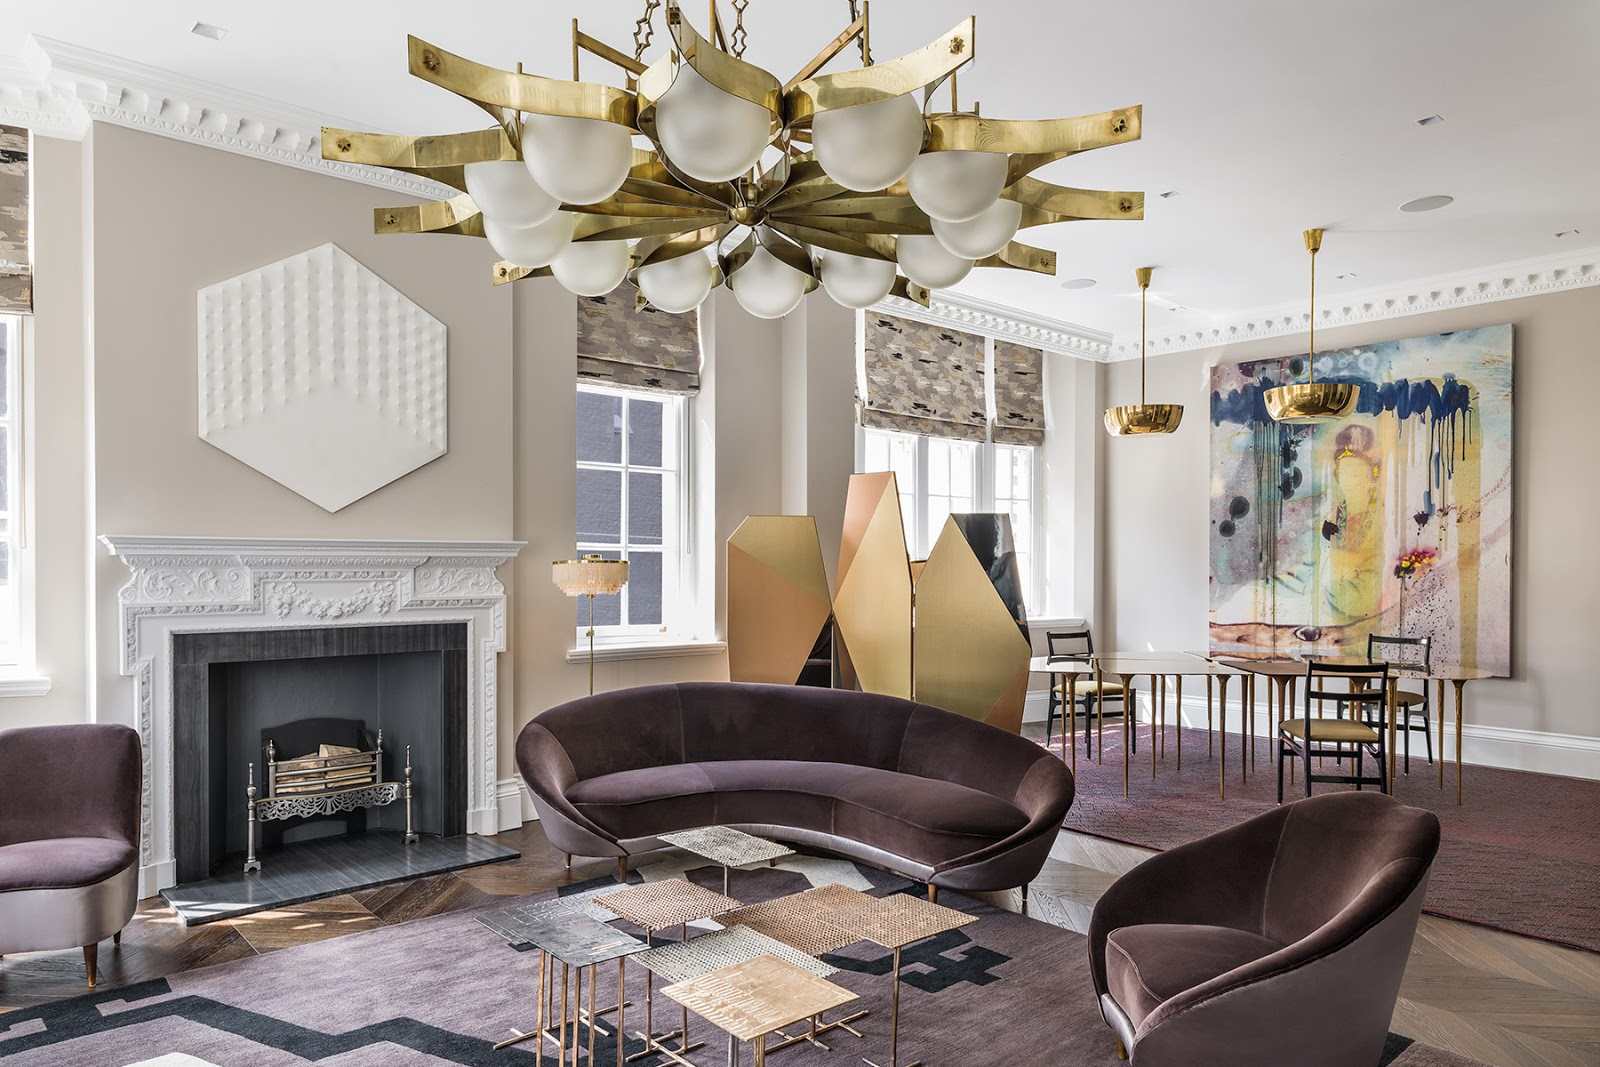 Luxurious eclectic London apartment with pattern geometric rugs, mid century modern furniture and art, old fireplace